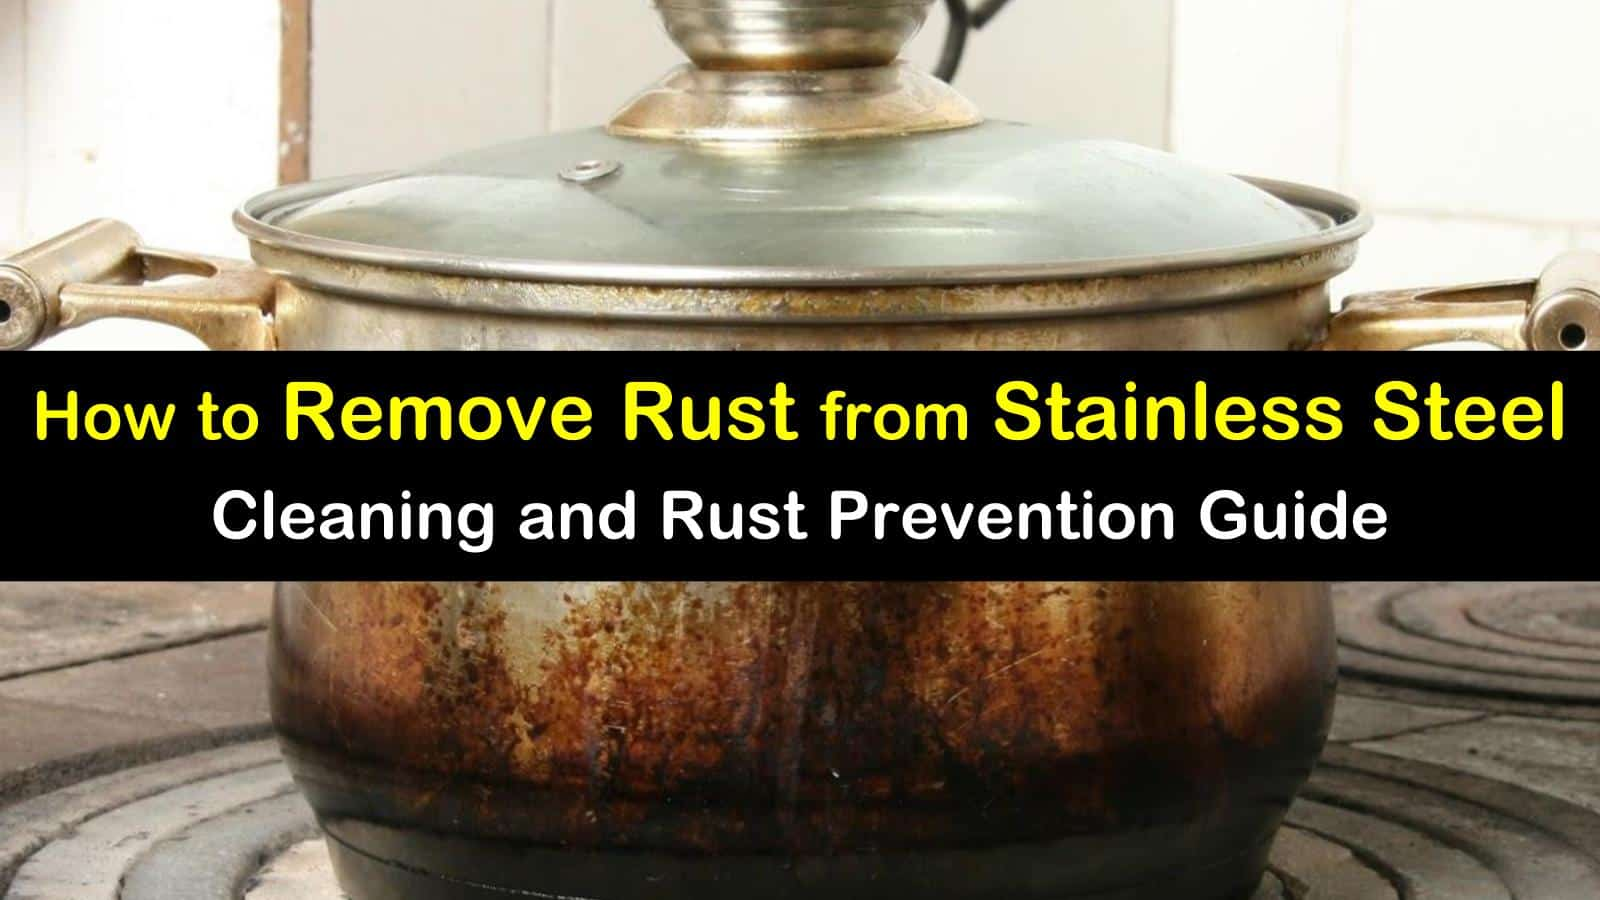 how to remove rust from stainless steel titleimg1